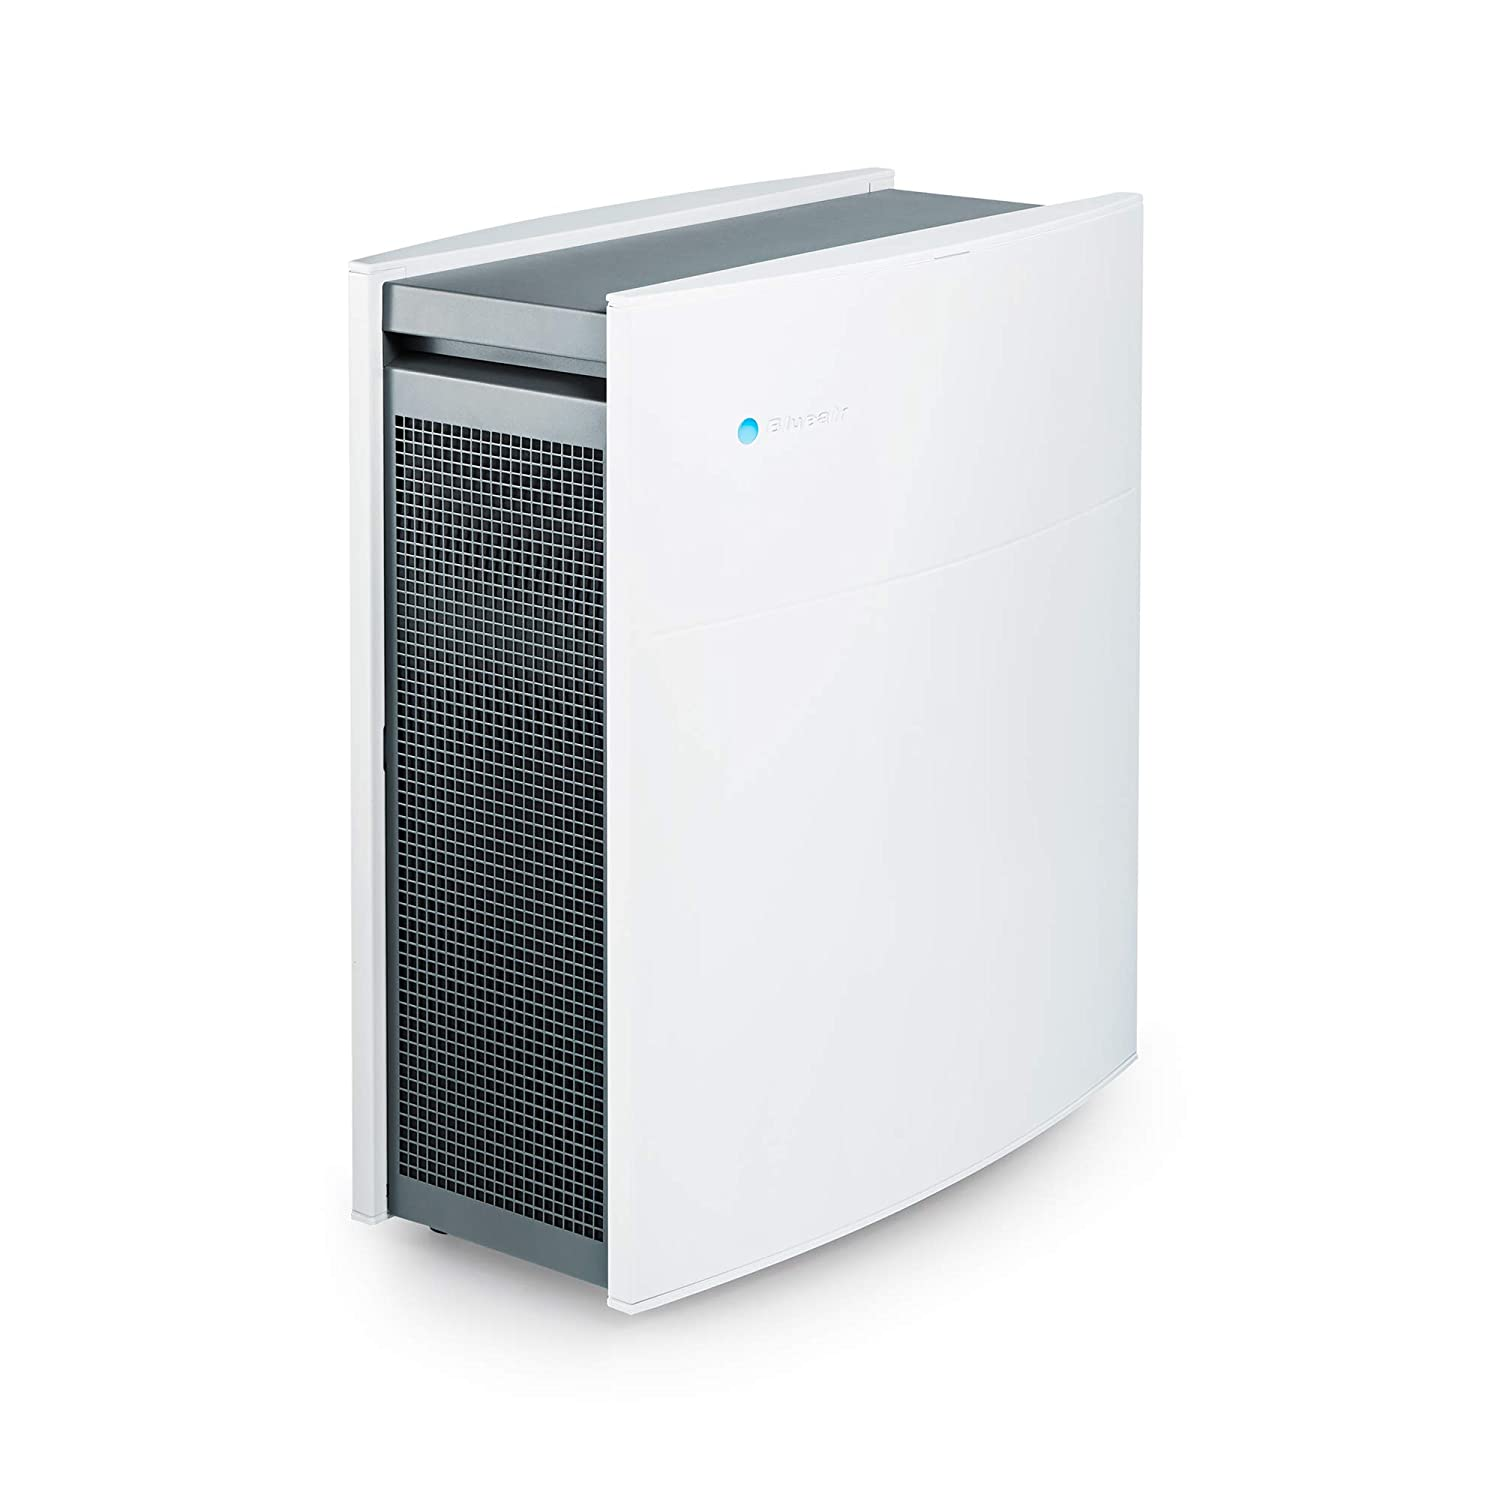 Blueair Classic 480i Air Purifier with HEPASilent Technology and DualProtection Filters